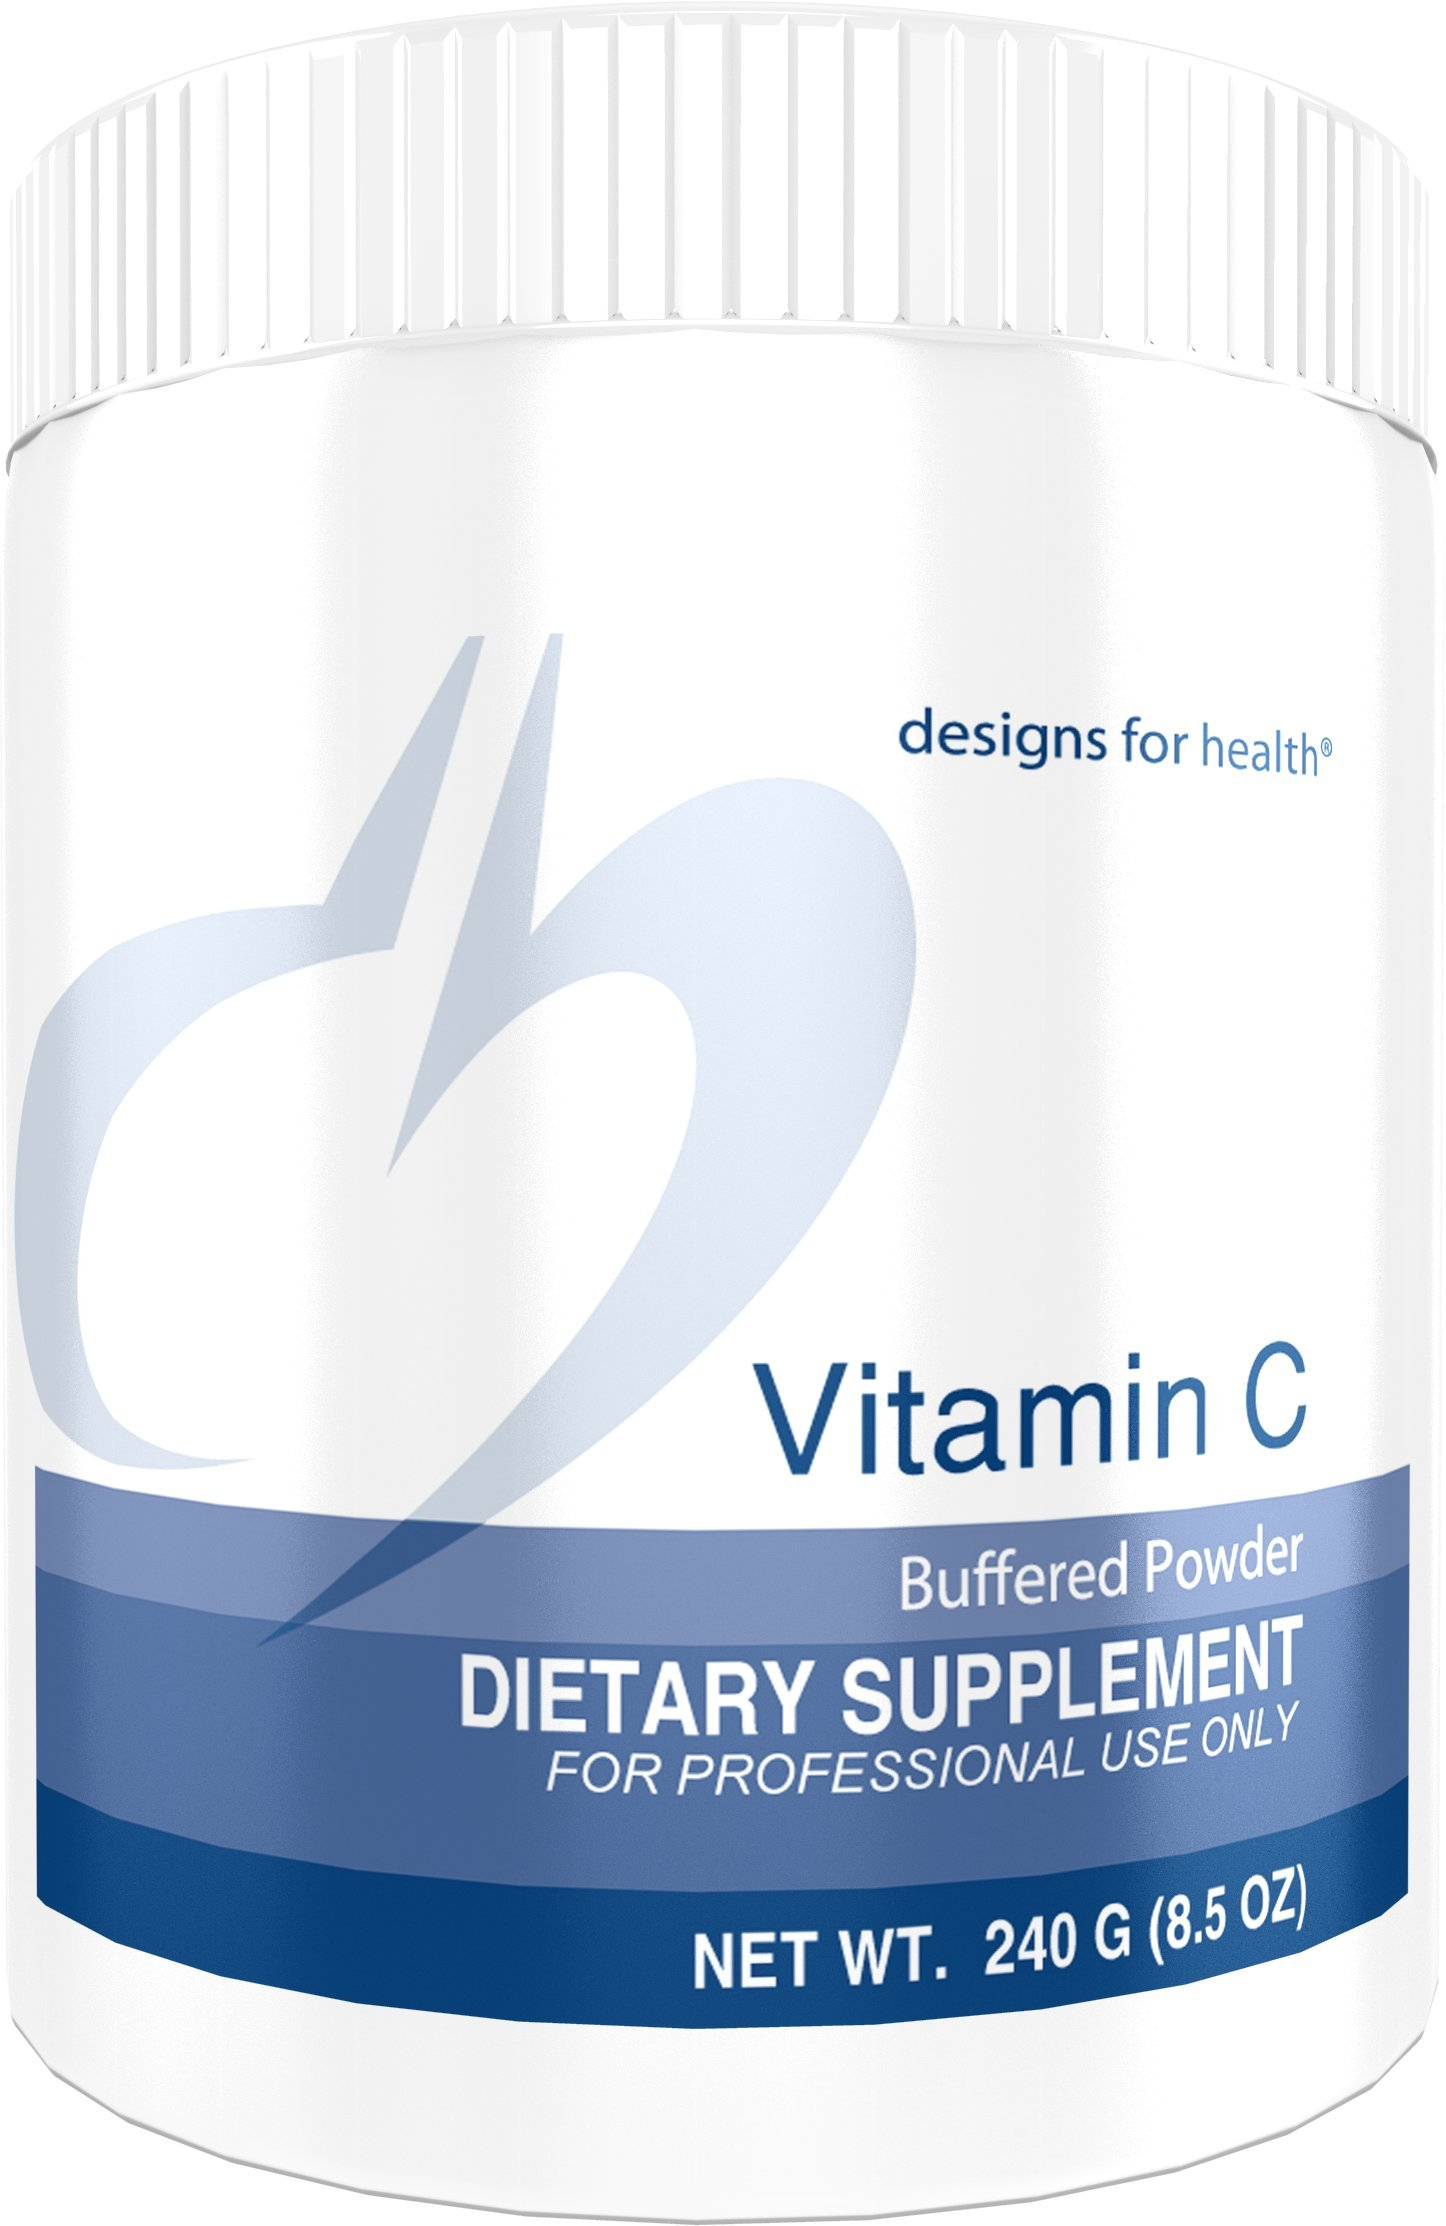 Designs for Health Buffered Vitamin C Powder 2000mg - High Dose Vitamin C with Alkalizing Minerals (240g / 80 Servings)